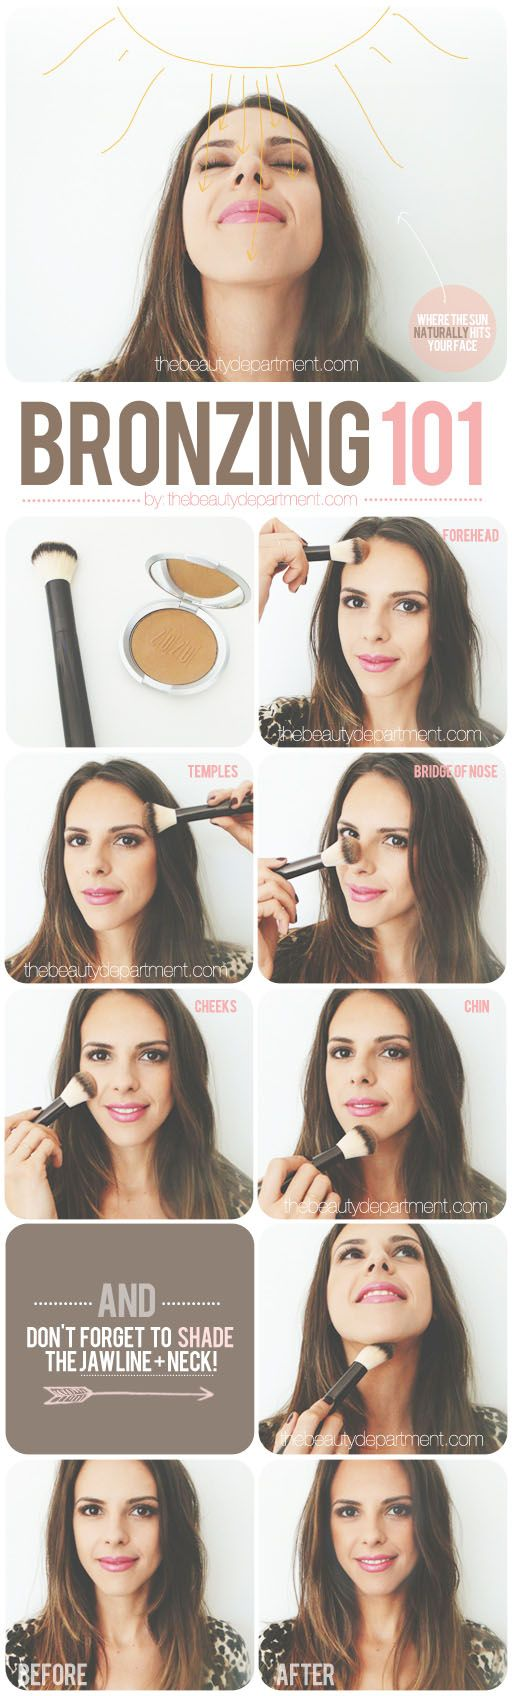 Get a gorgeous glow with these tips from The Beauty Department #beautywithbenefits